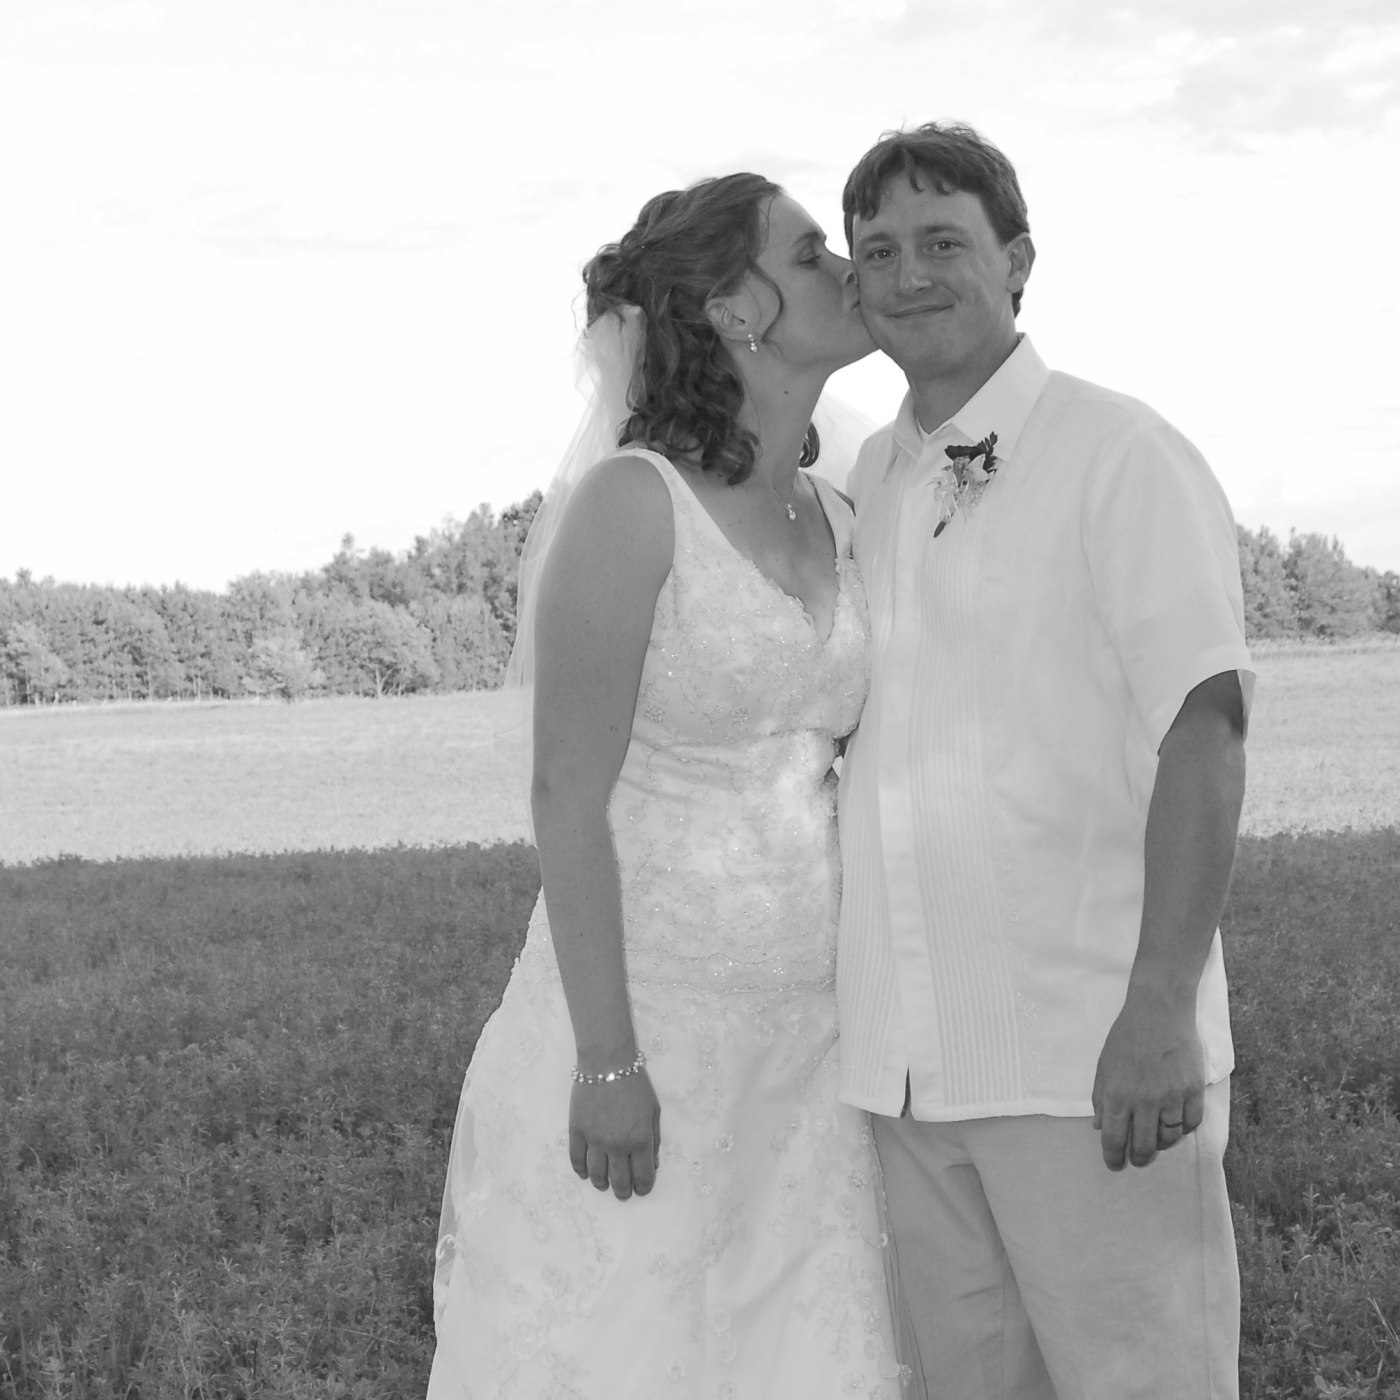 wedding photo at farm